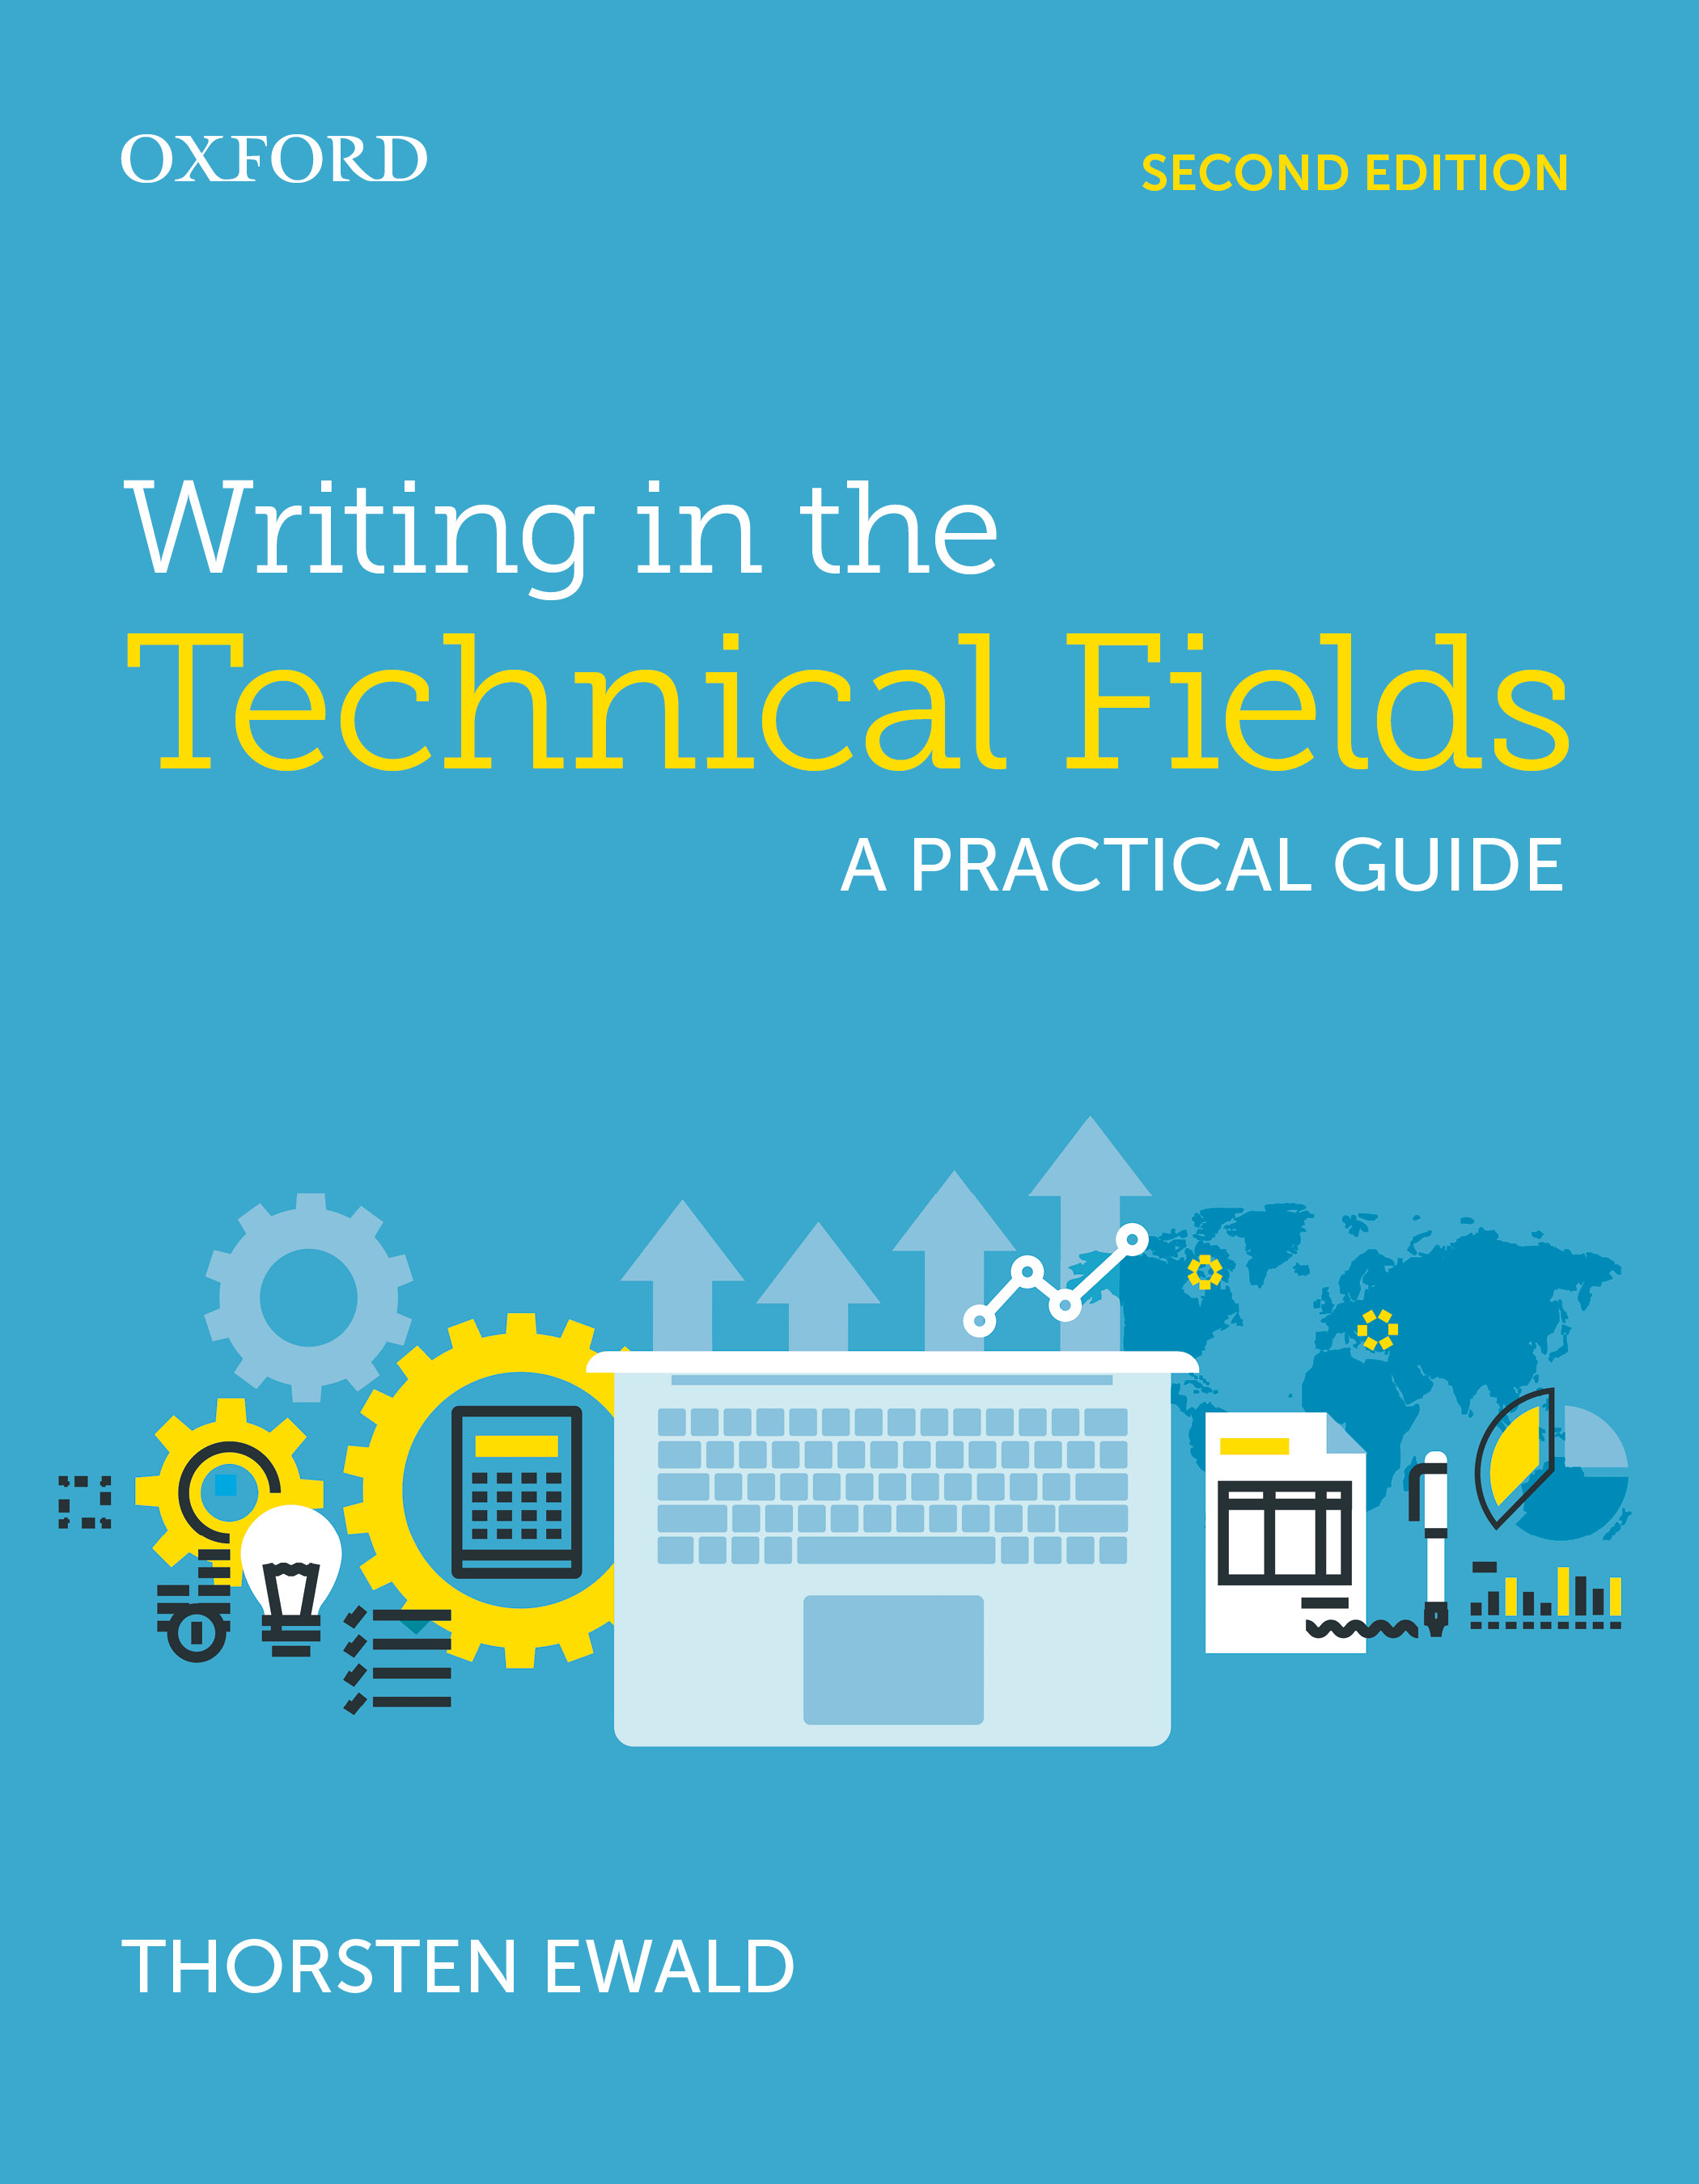 Writing in the Technical Fields 2e